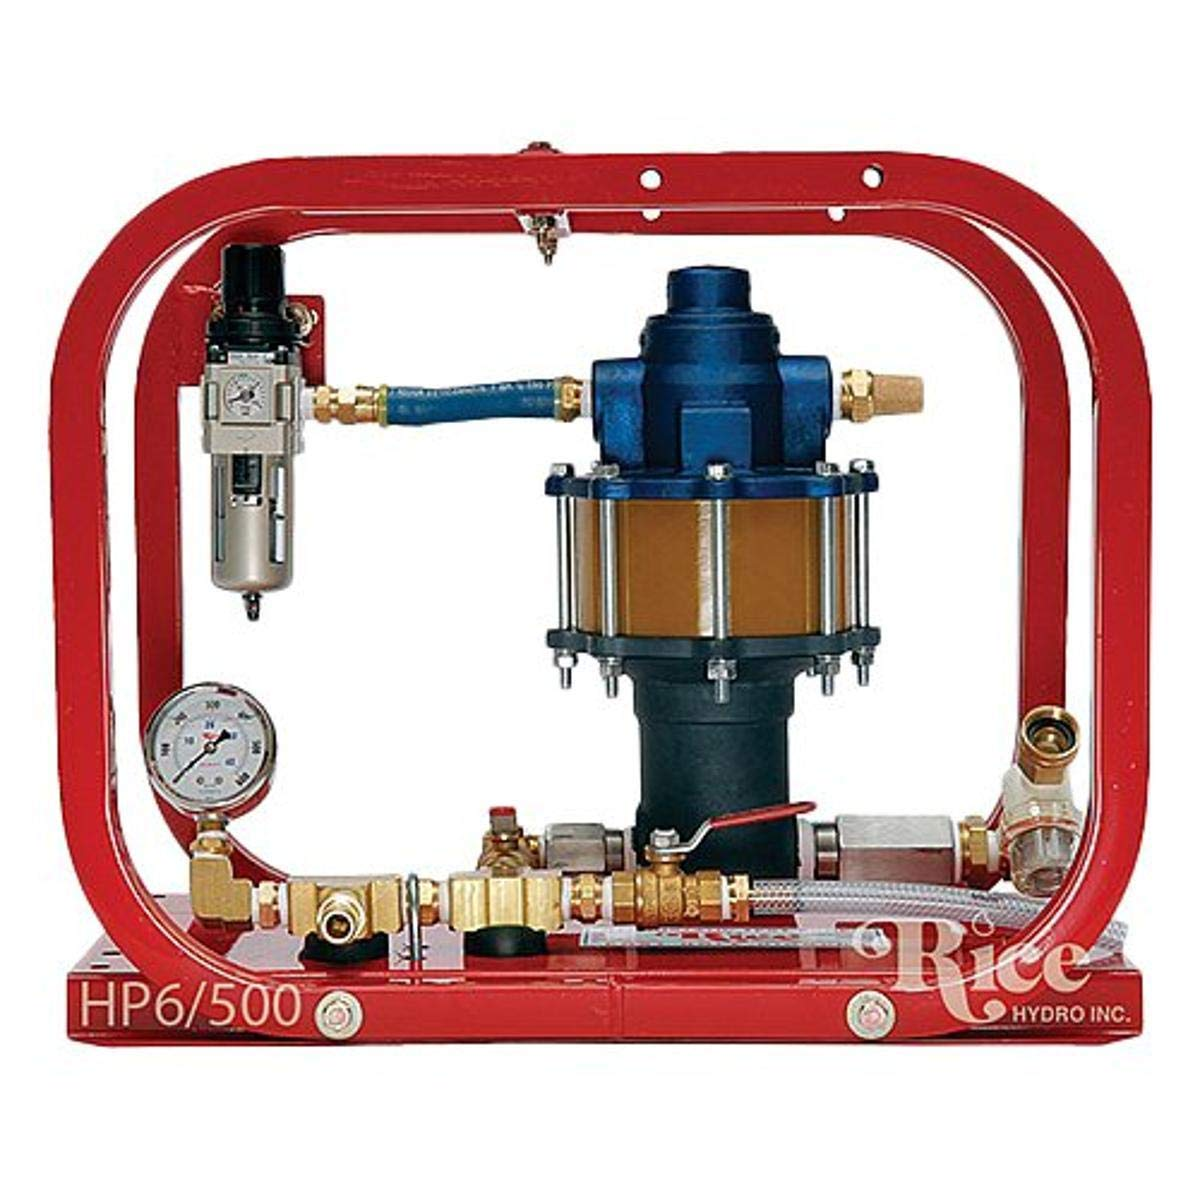 Rice Hydro HP-6/500 Pneumatic Hydrostatic Test Pump with Pressures Up to 500 psi, 6 gpm